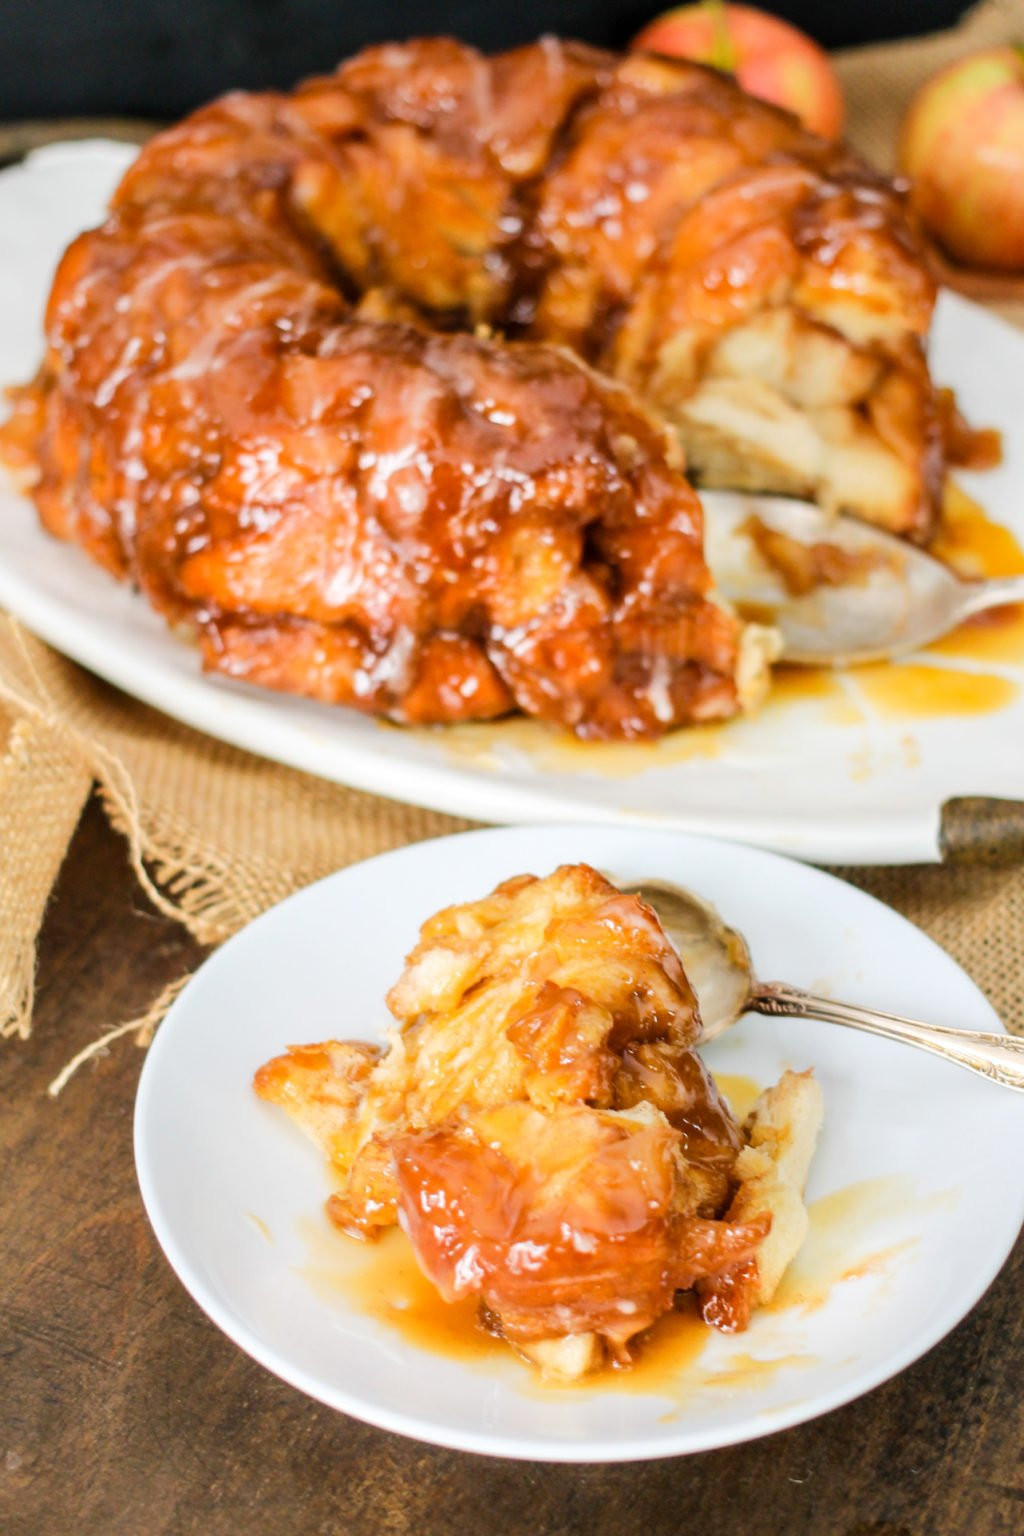 Loaded with caramel, apples, and delicious brown sugar, this Caramel Apple Monkey Bread is going to be everyone's favorite fall treat! Serve it up for breakfast or dessert!